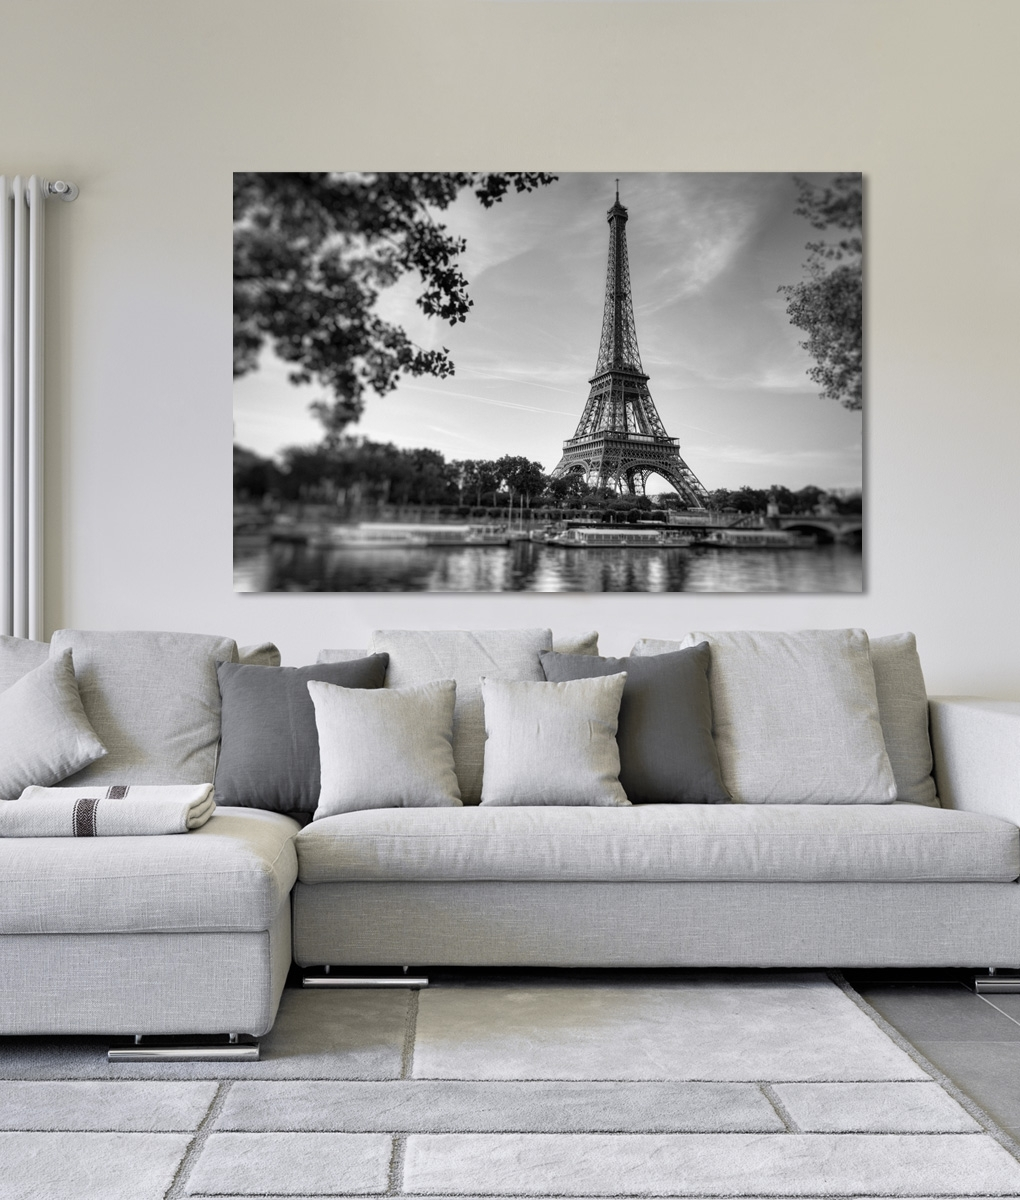 Paris Siene River Eiffel Tower Canvas Print | Framingland Pertaining To Latest Canvas Wall Art Of Paris (View 2 of 15)